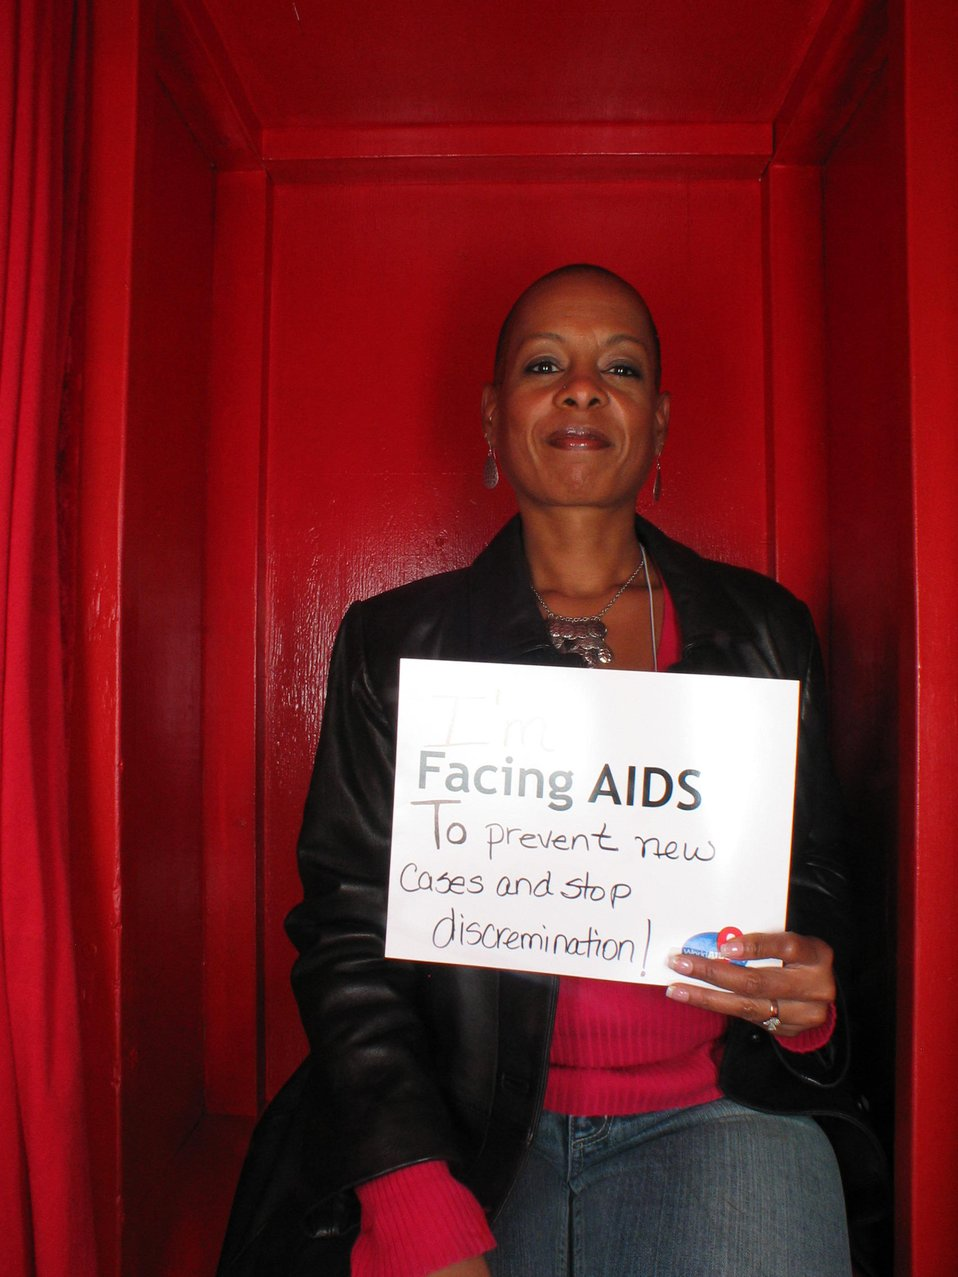 Facing AIDS to prevent new cases and stop discrimination